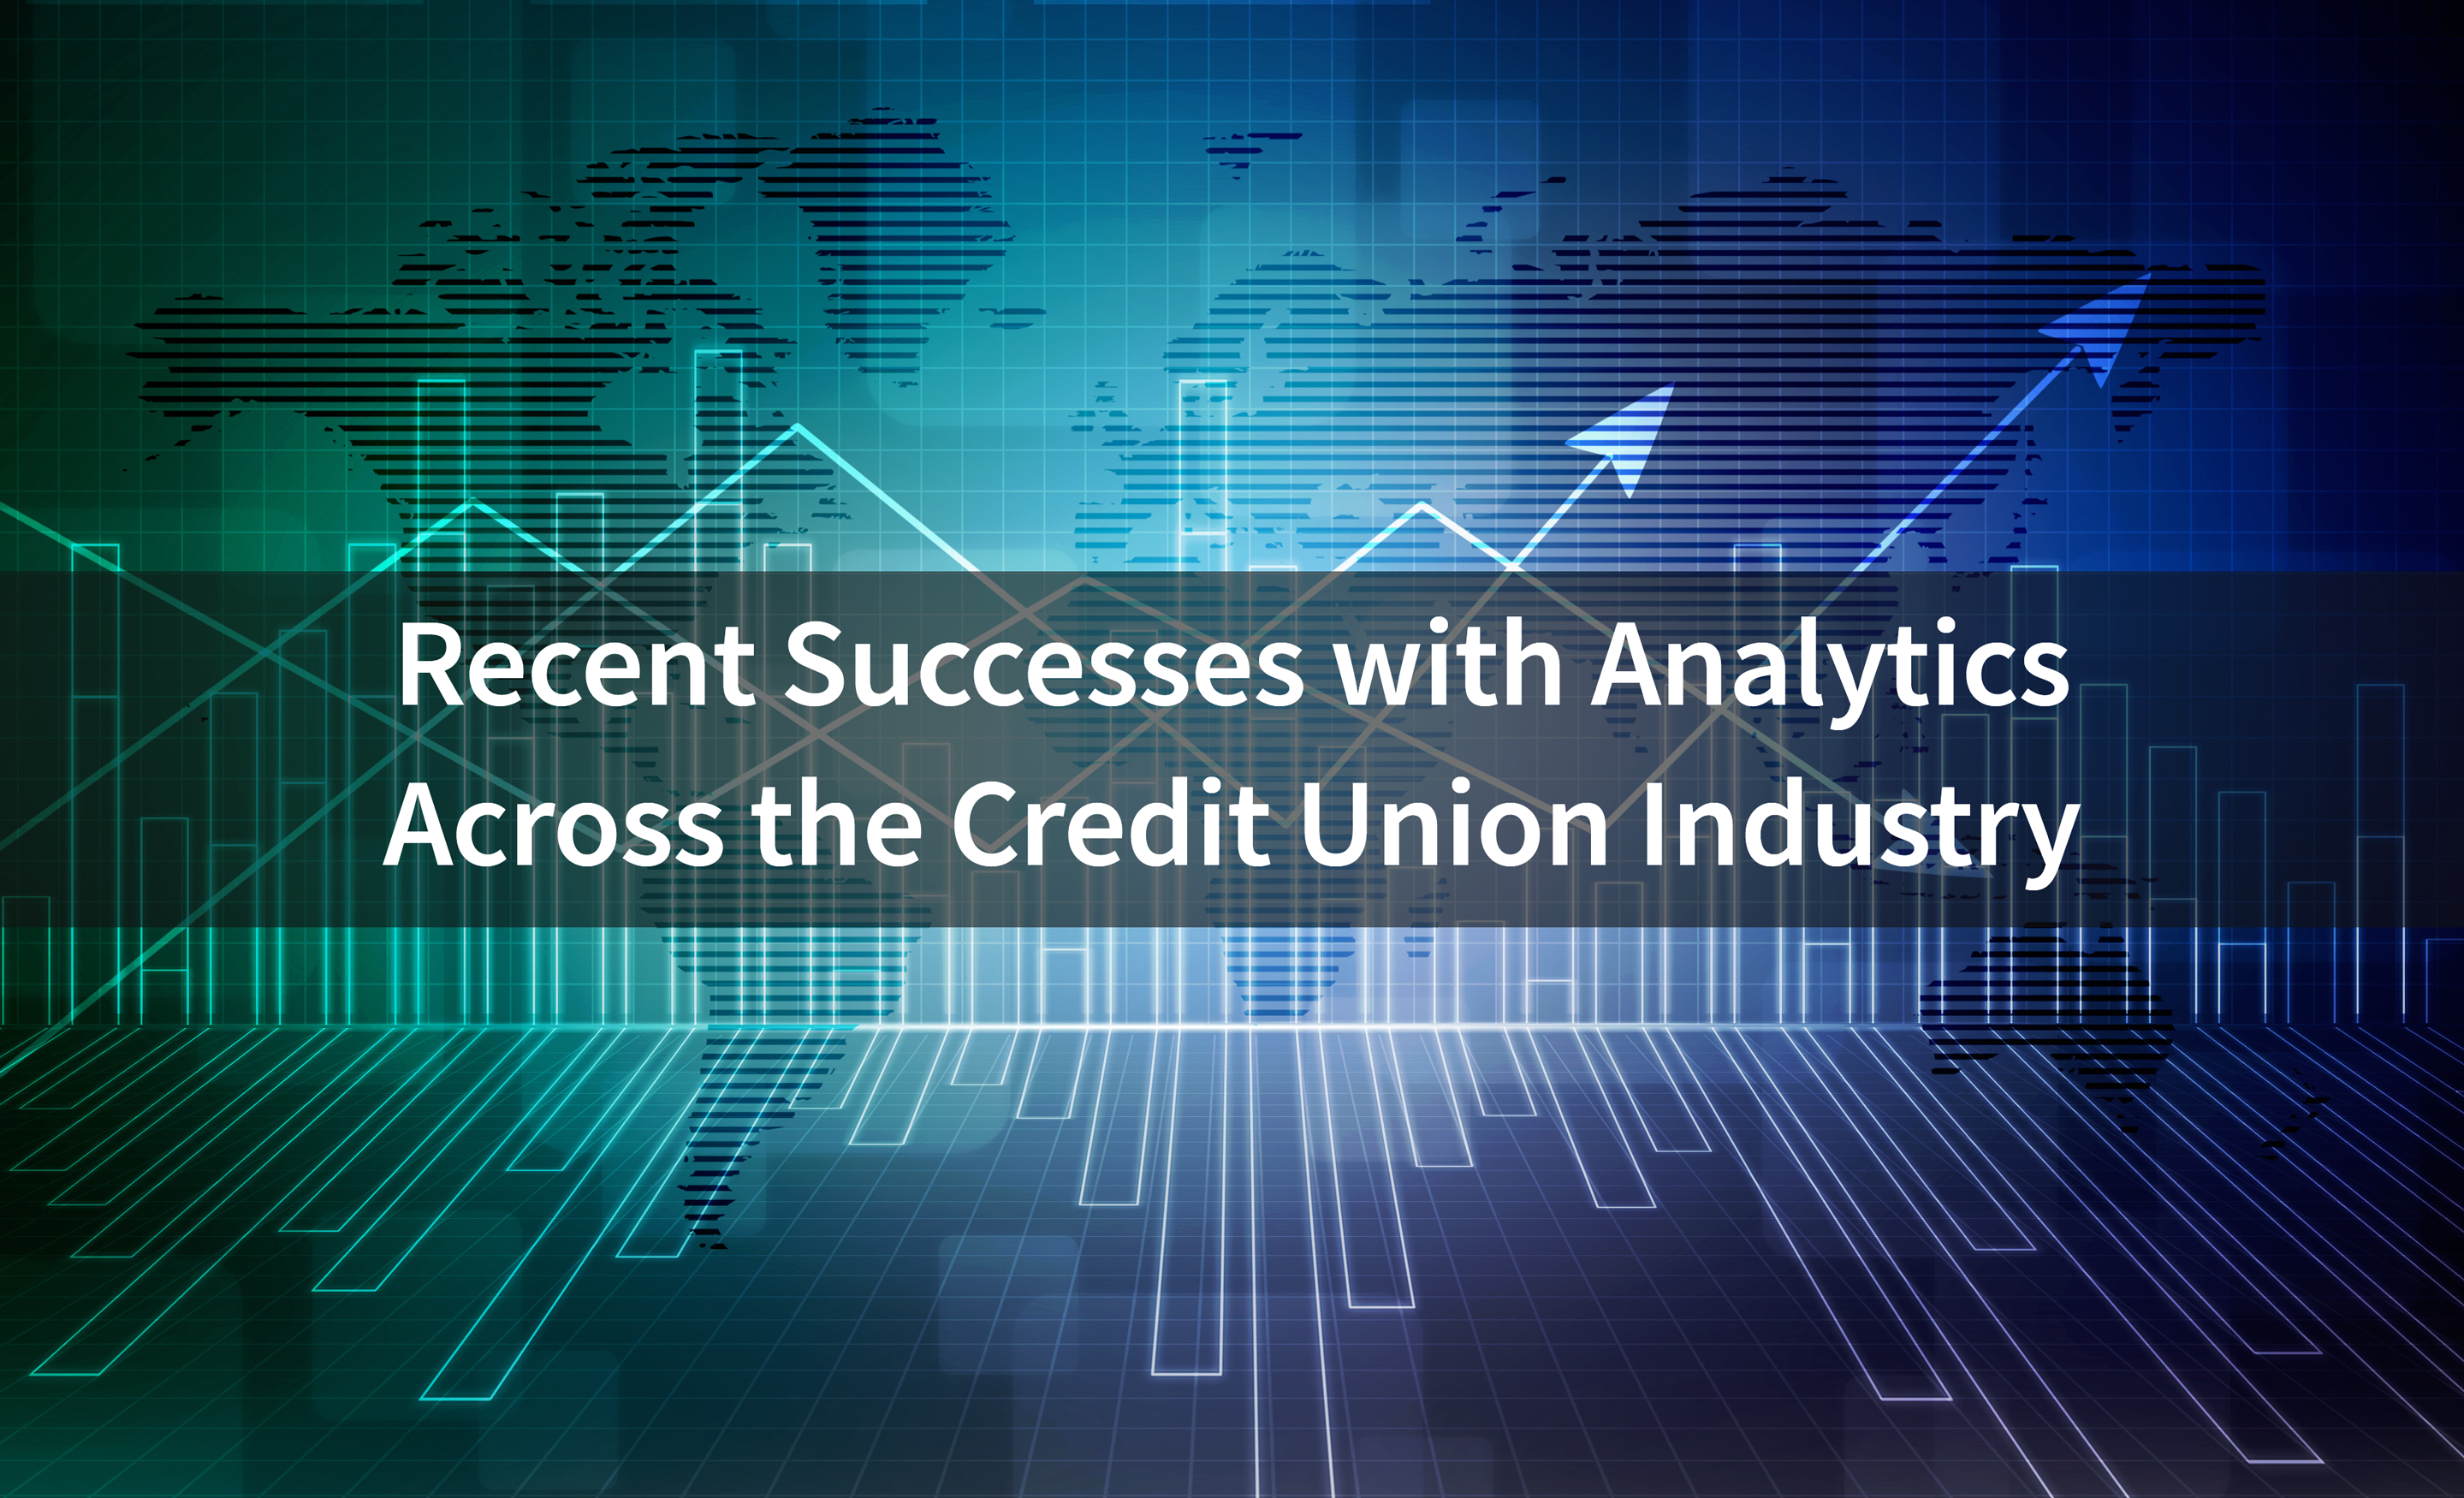 Recent-Successes-With-Analytics-Across-the-Credit-Union-Industry